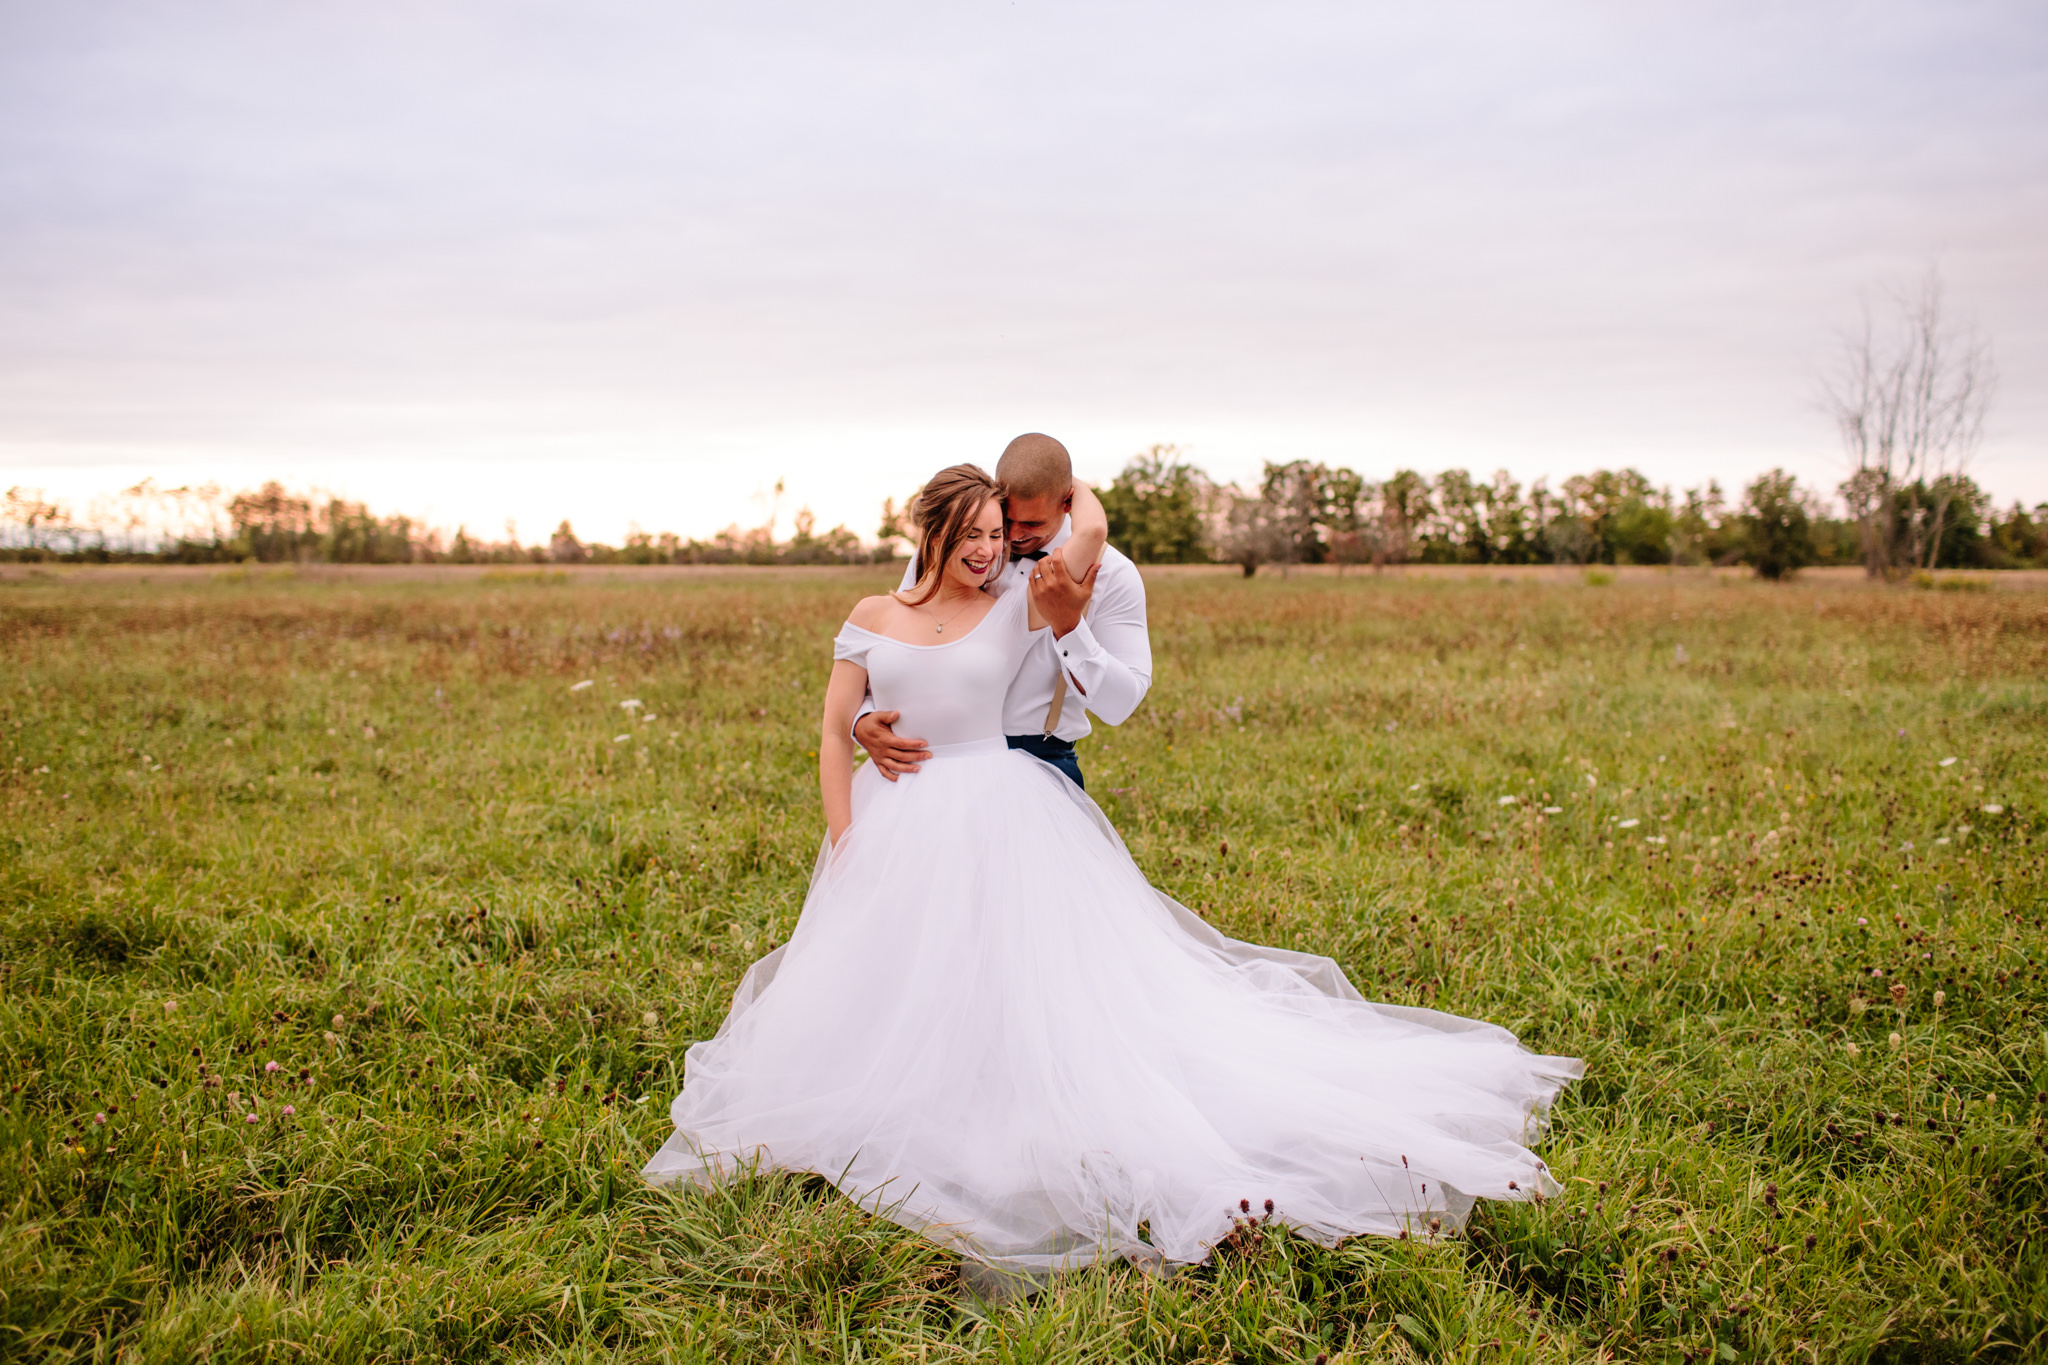 bride and groom in a embrace in a field